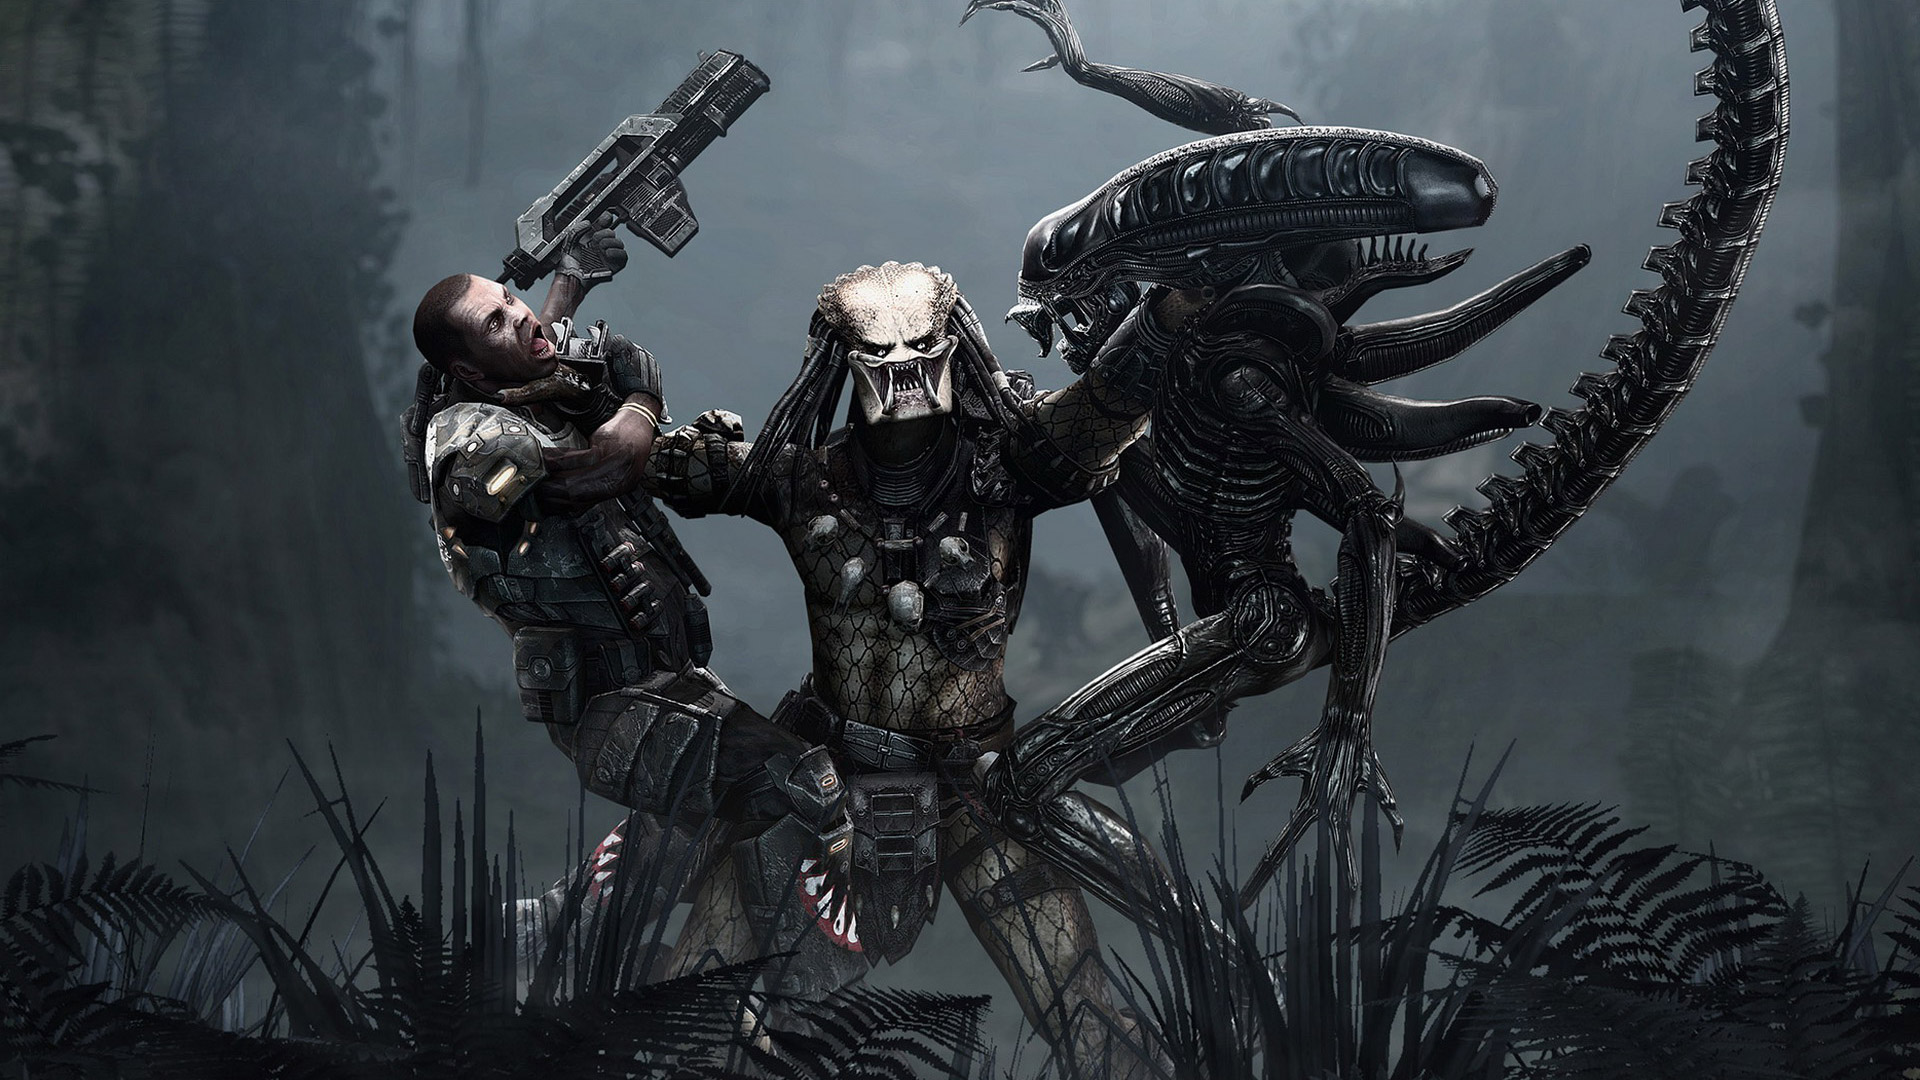 Free Aliens vs Predator Wallpaper in 1920x1080